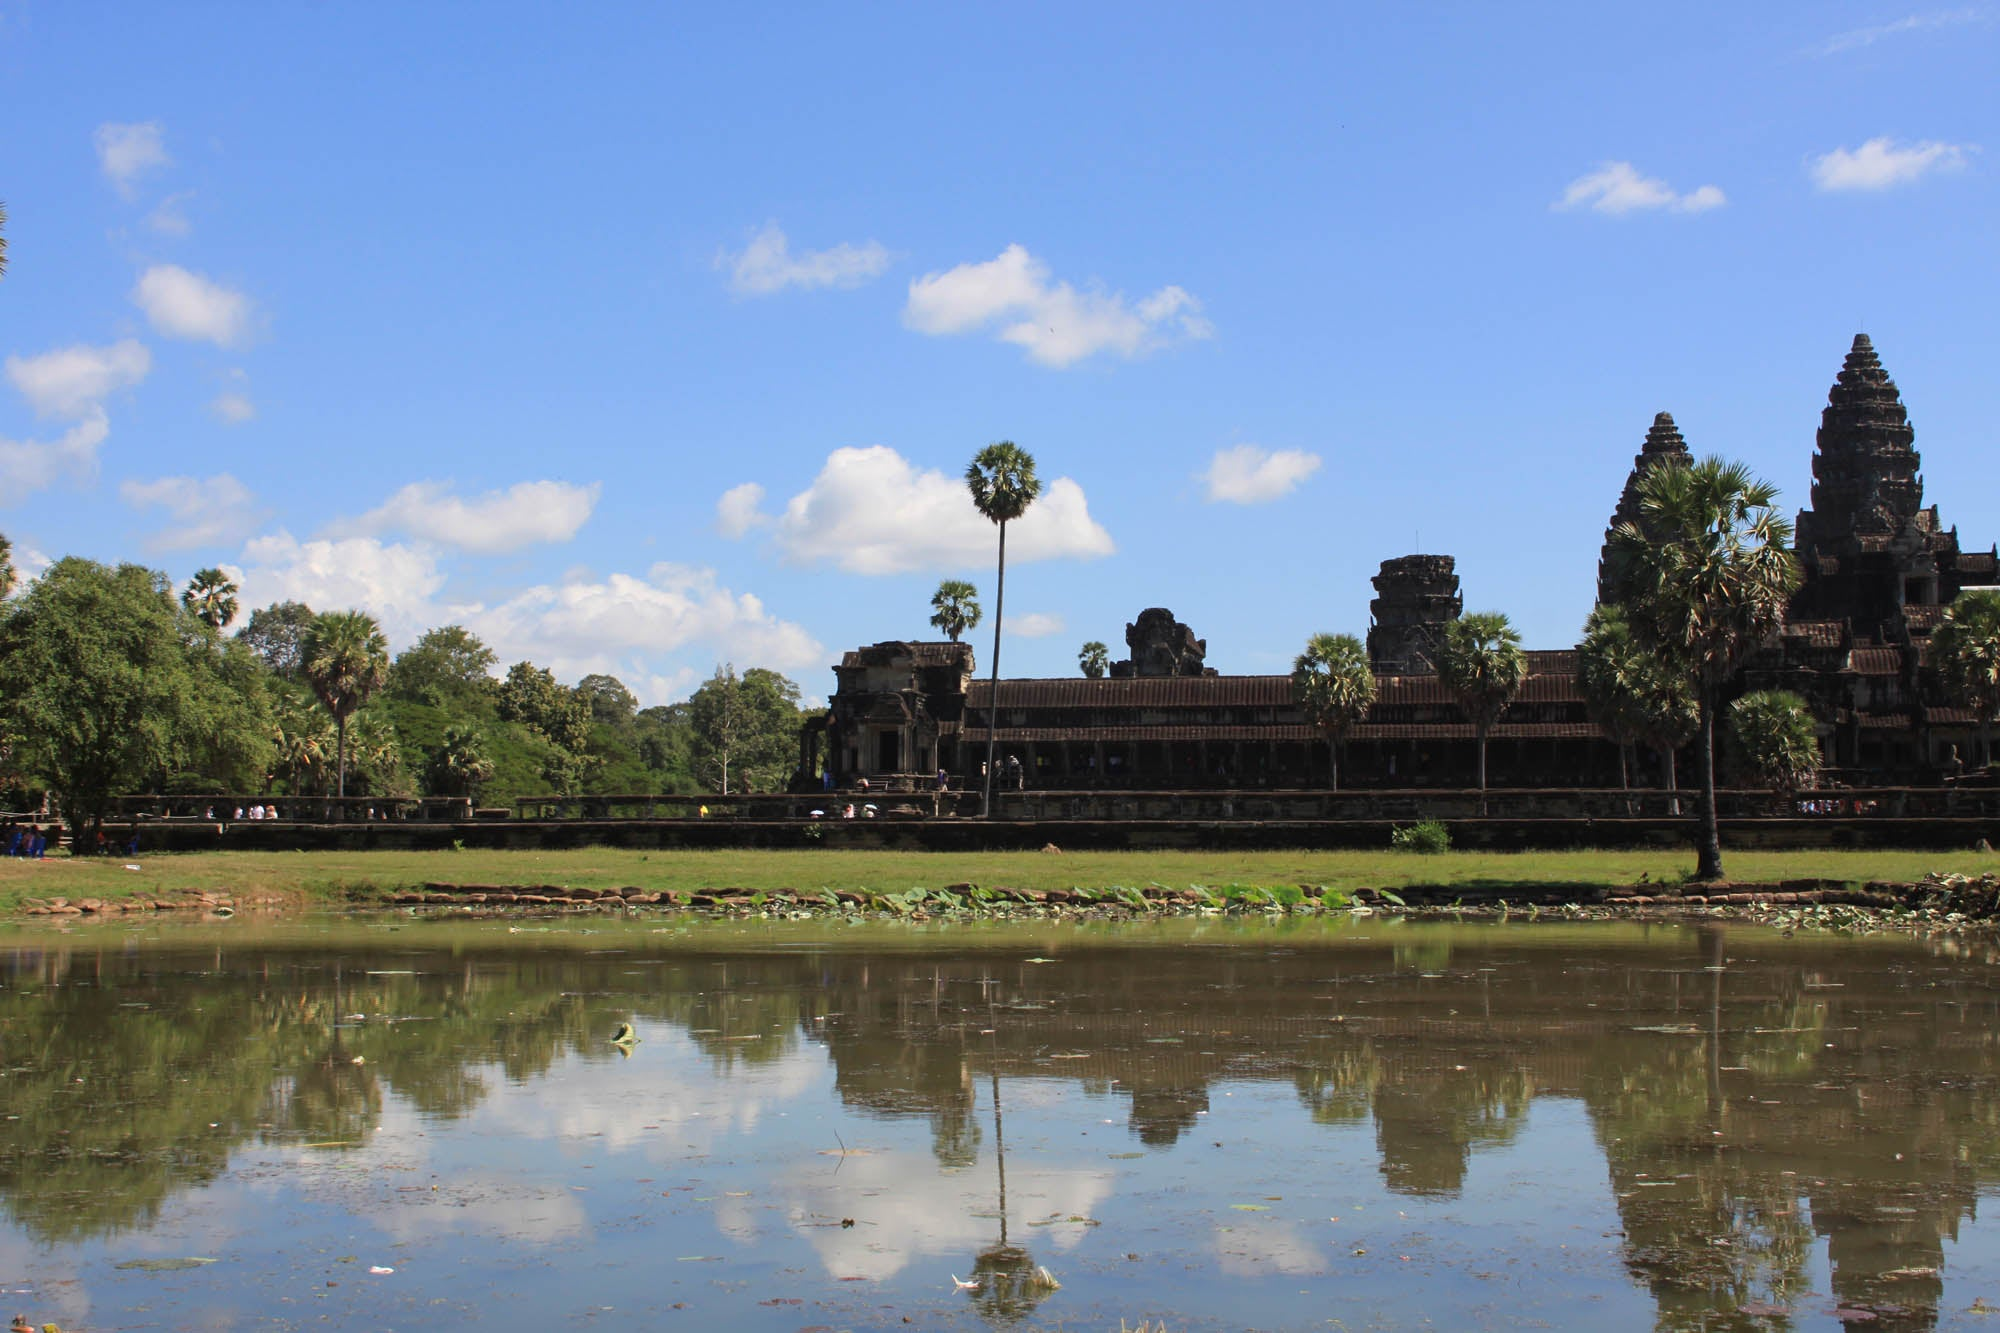 Siam reap photo